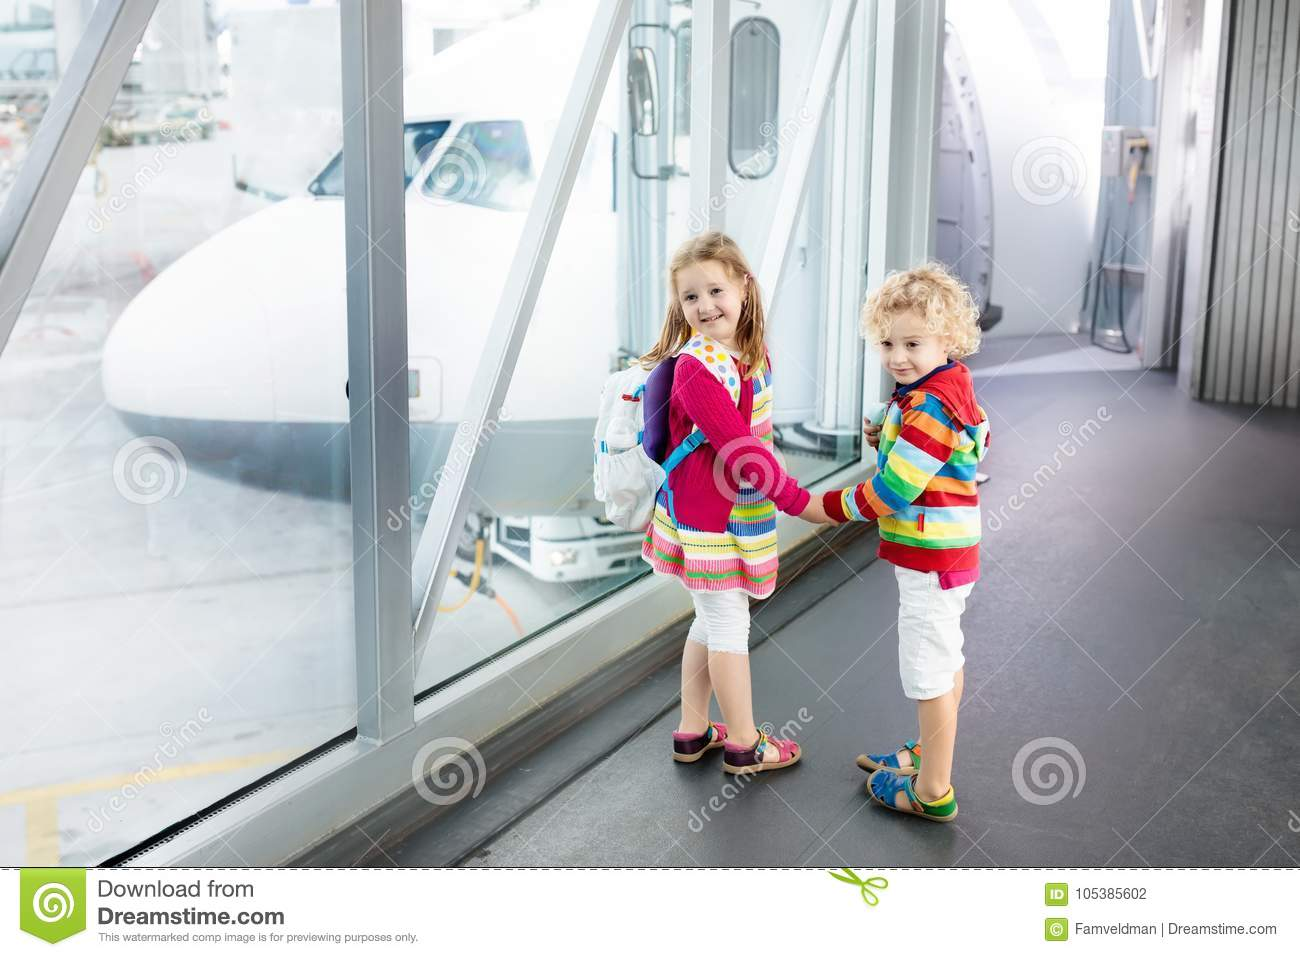 Kids Travel And Fly. Child At Airplane In Airport Stock ...